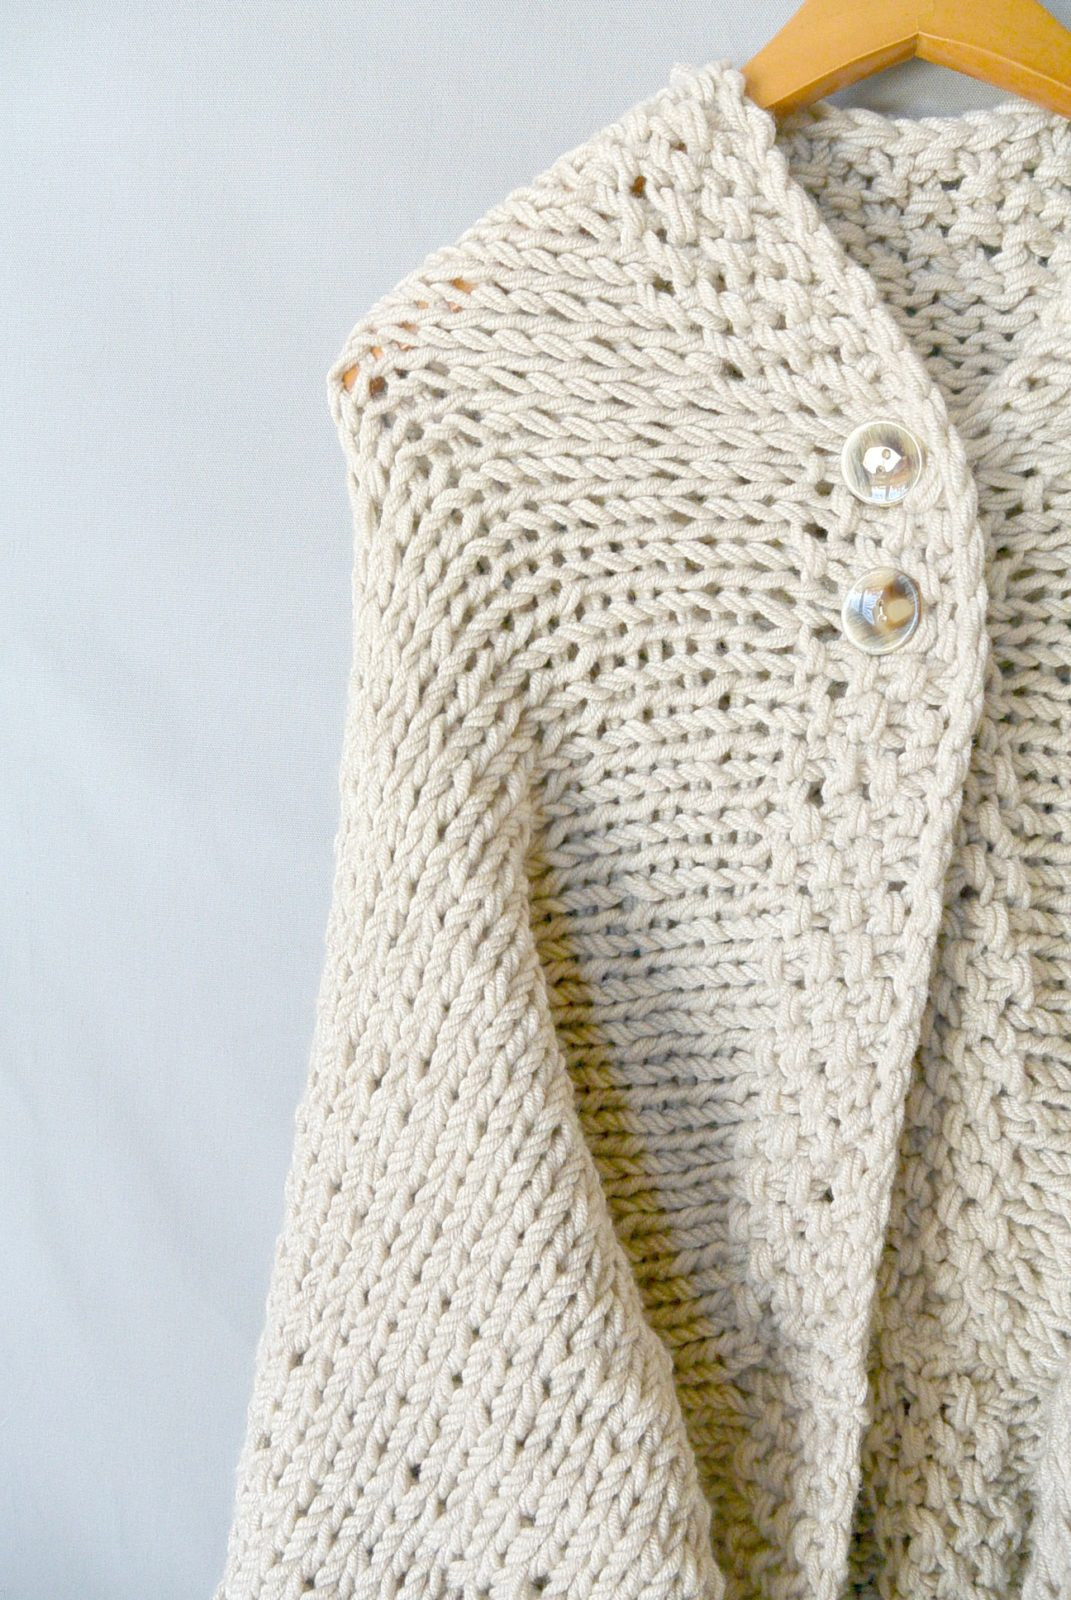 Knit Crochet Fresh Easy Knit Blanket Sweater Pattern – Mama In A Stitch Of New 49 Pictures Knit Crochet